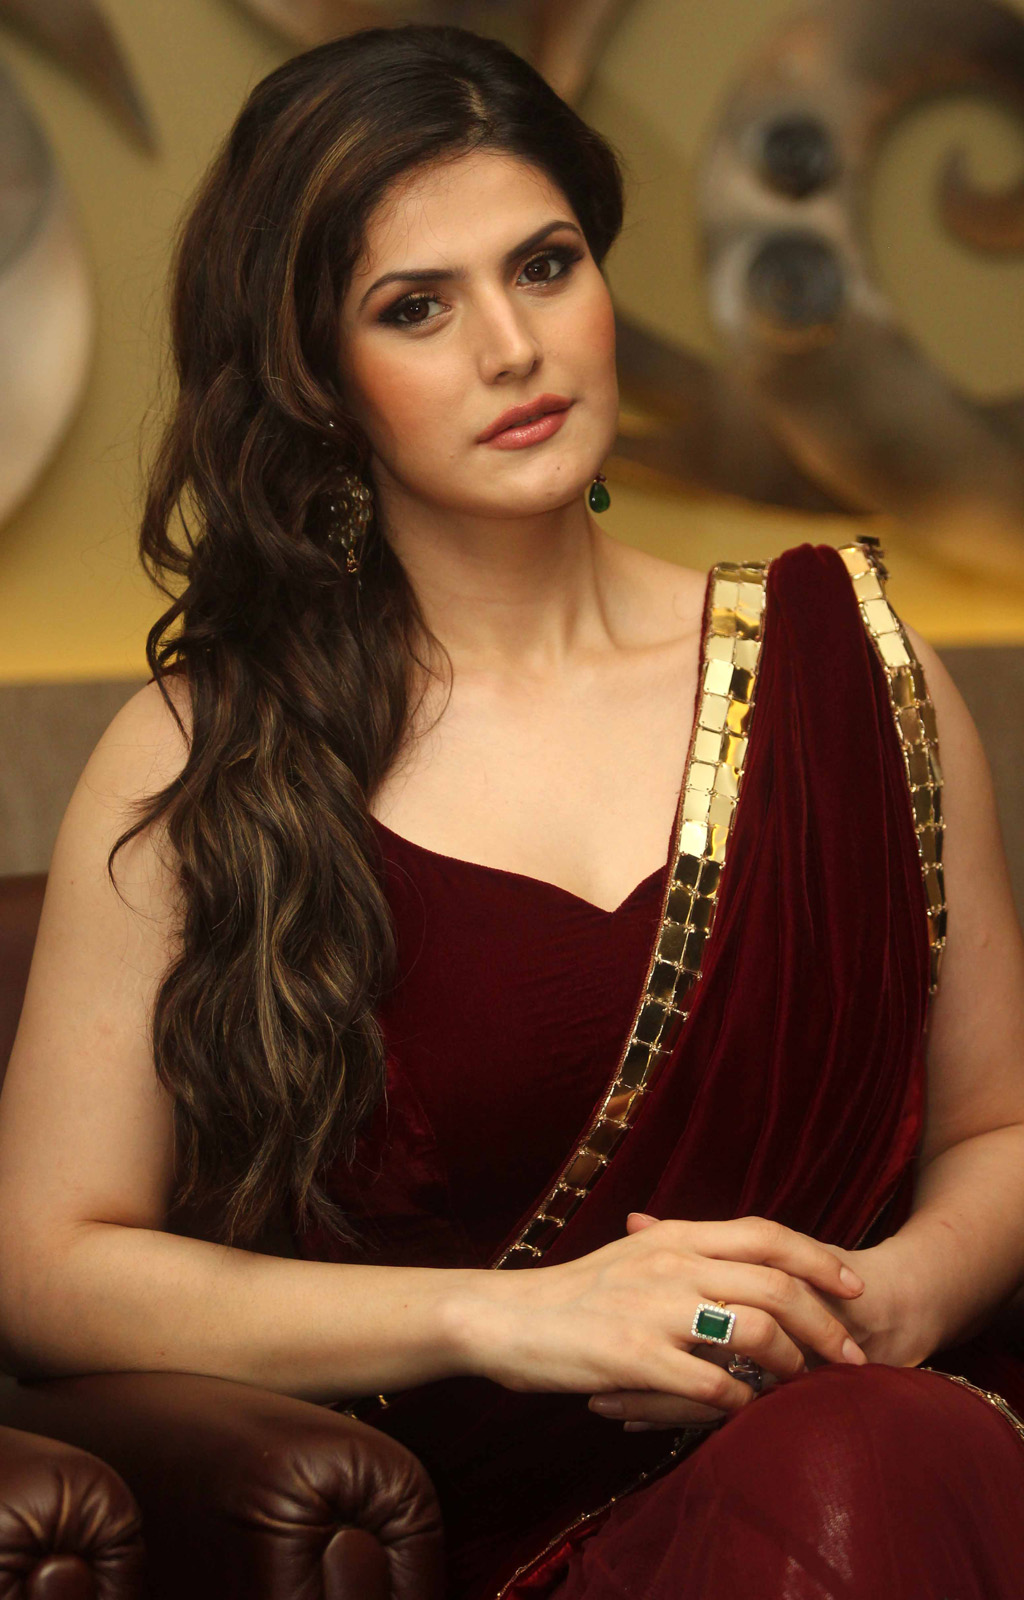 Zarine Khan Hot Photos In Red Saree At Indian Wedding -4424